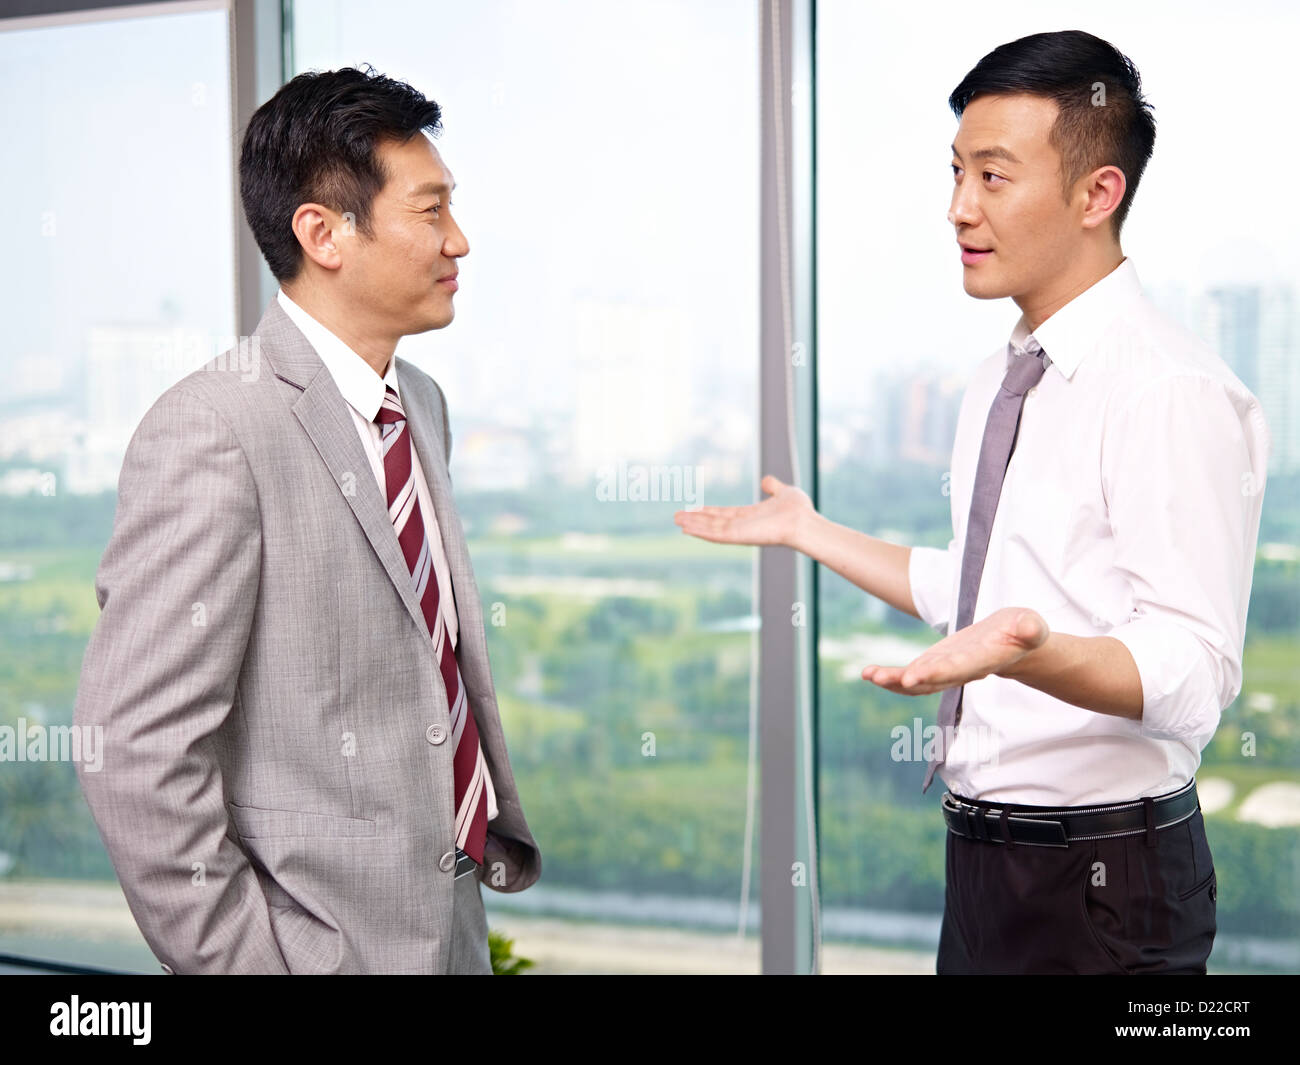 Asian Business People - Stock Image